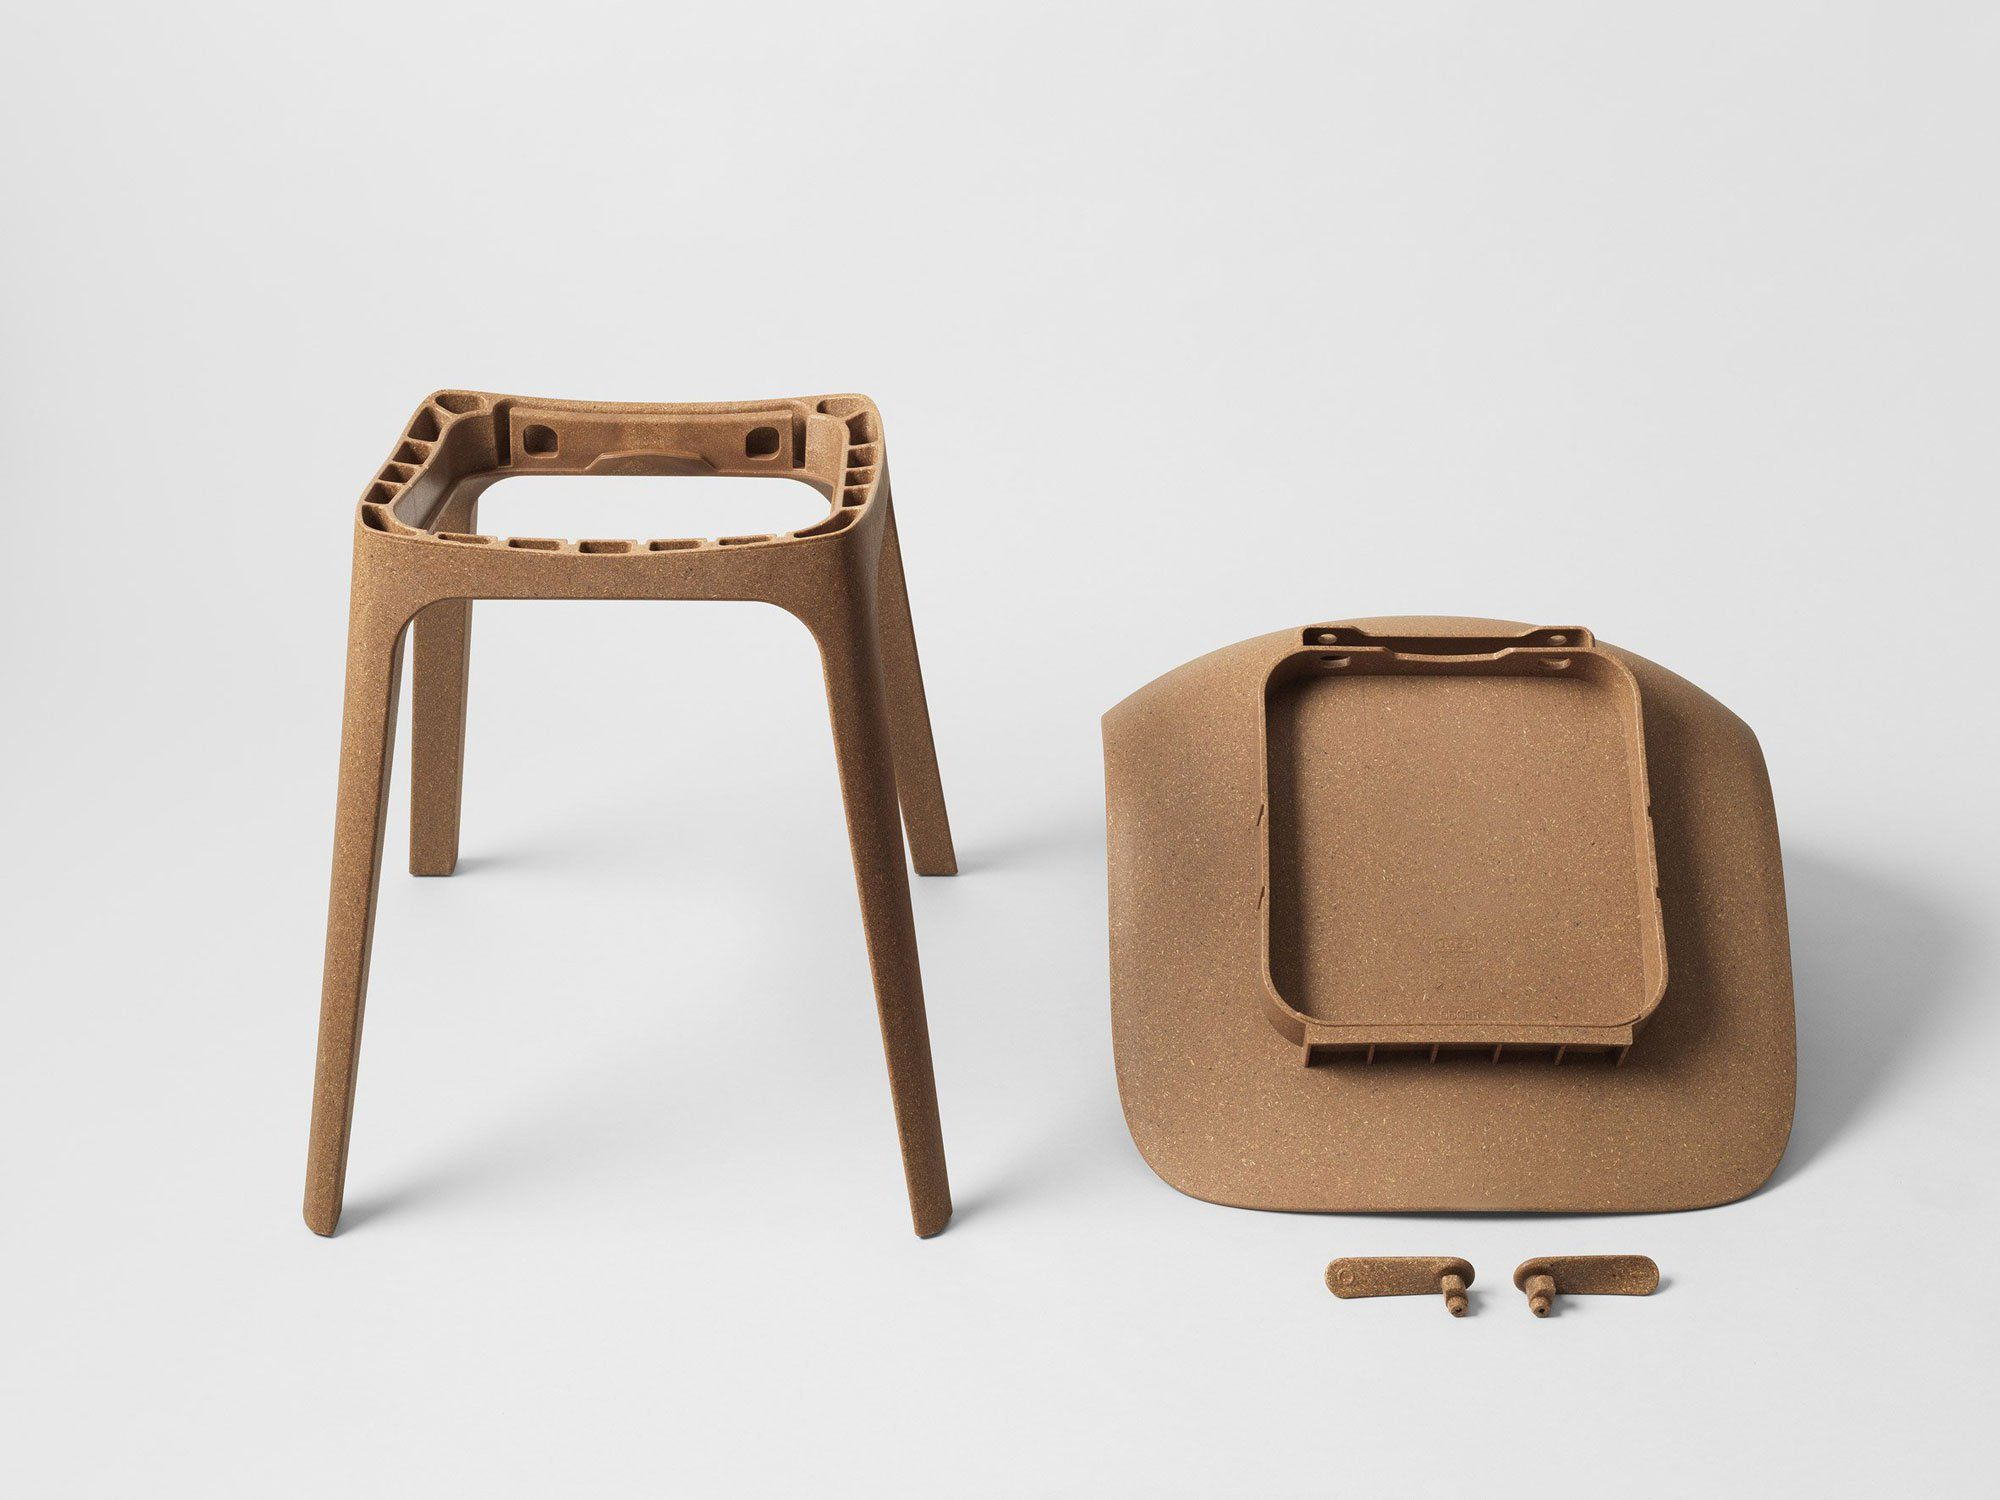 Eco Friendly Chairs Odger Designed By